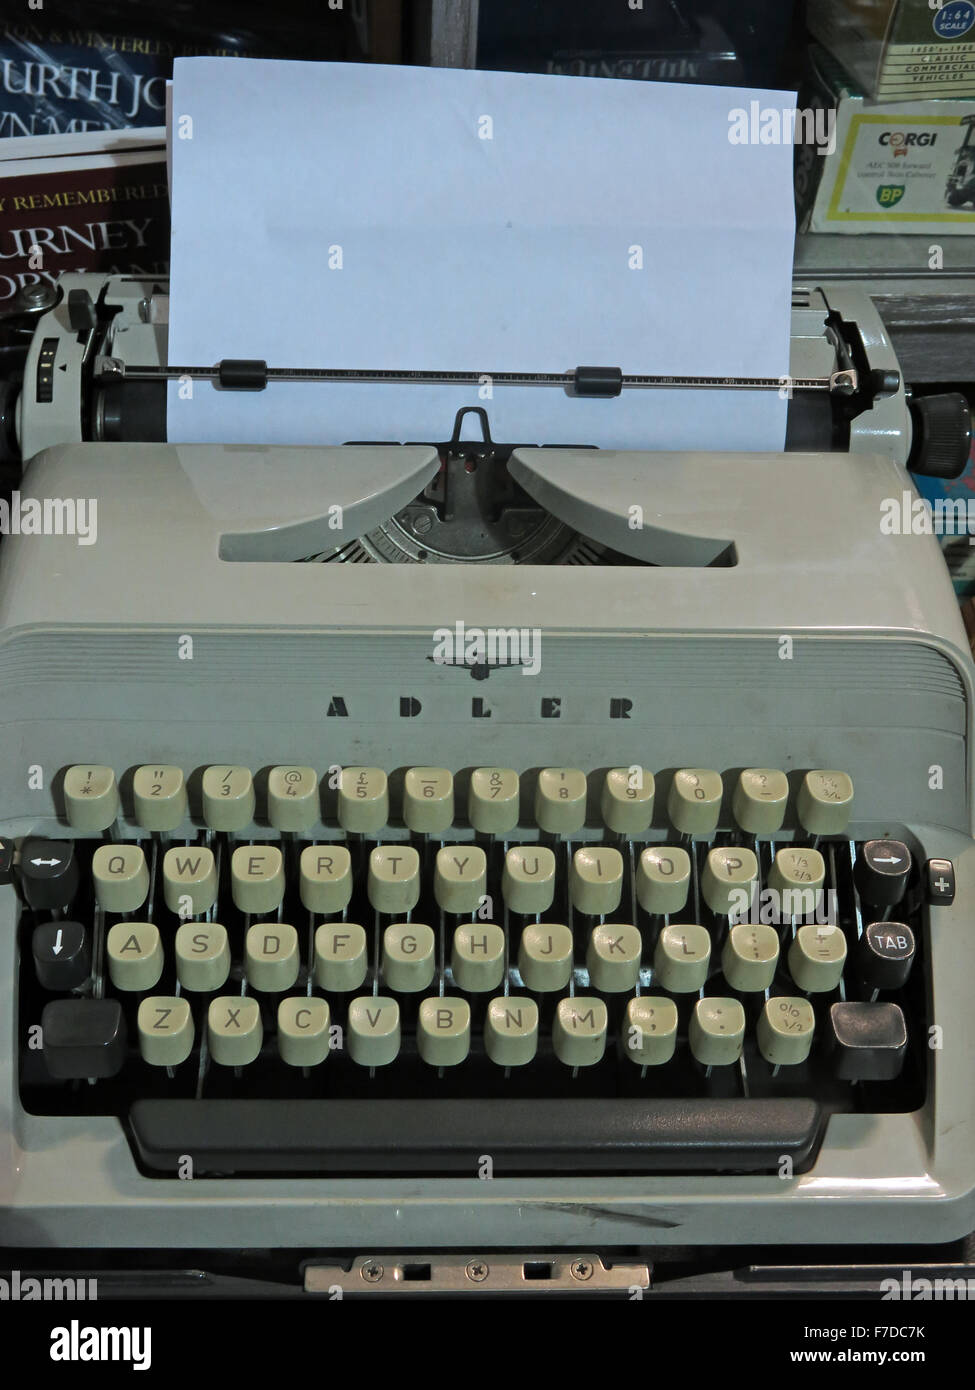 busines,letter,office,work,machine,technology,old,obsolete,tech,keys,keyboard,key,querty,retro,typed,azerty,vintage,brand,Gabriele,typewriter,author,tool,of,the,trade,Olivetti,company,TA,Royal,with,paper,sheet,words,old technology,Obsolete Technology,Tool,of,the,trade,sheet of paper,GoTonySmith,Buy Pictures of,Buy Images Of